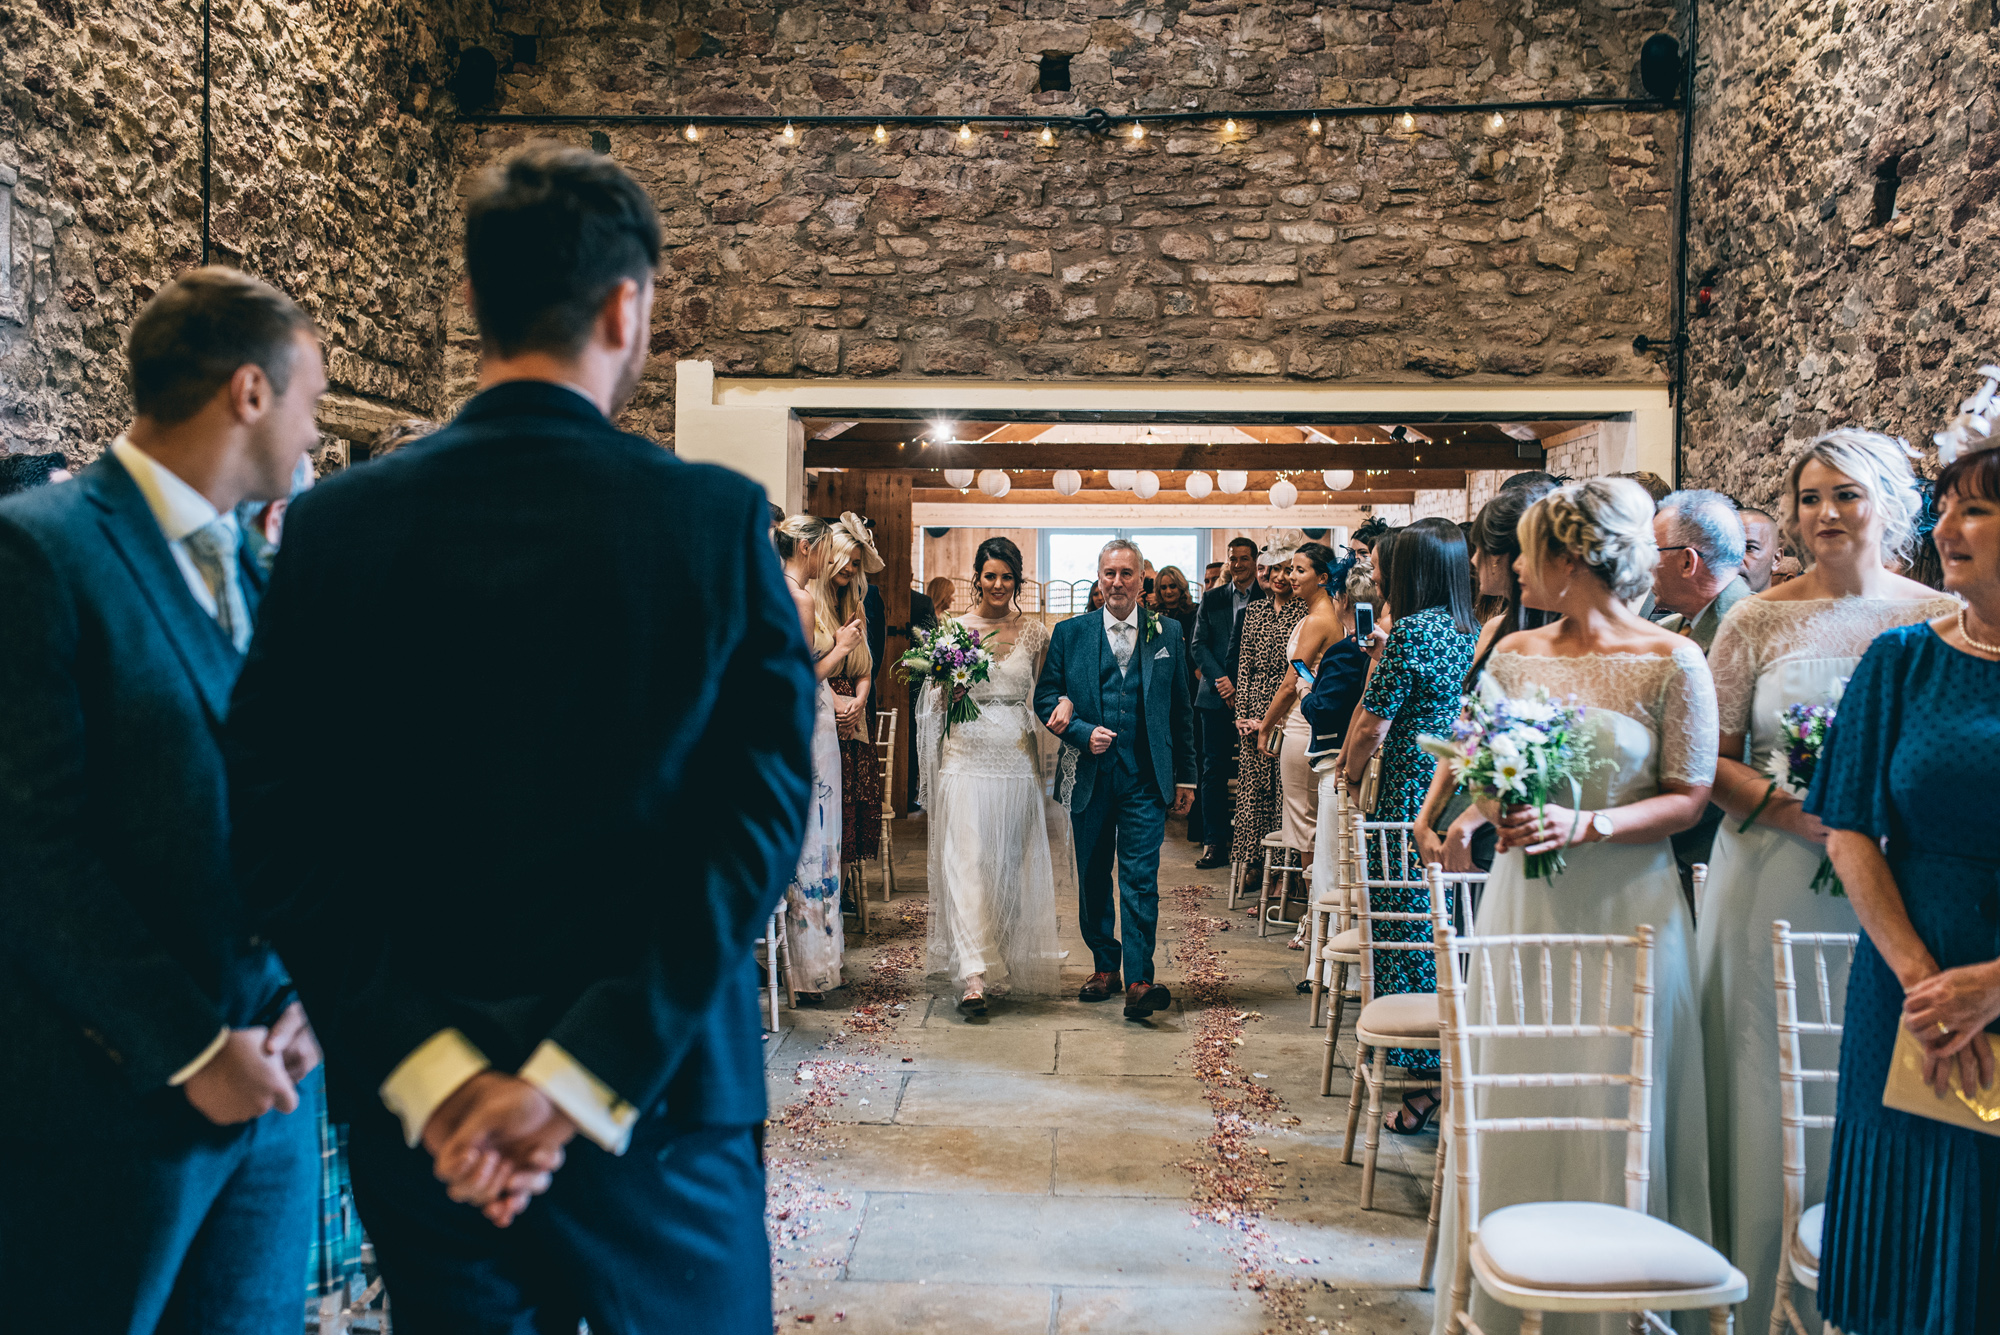 Kate-Beaumont-Sheffield-Lucy-Bohemian-Lace-Dress-Barn-Wedding-Cumbria-7.jpg